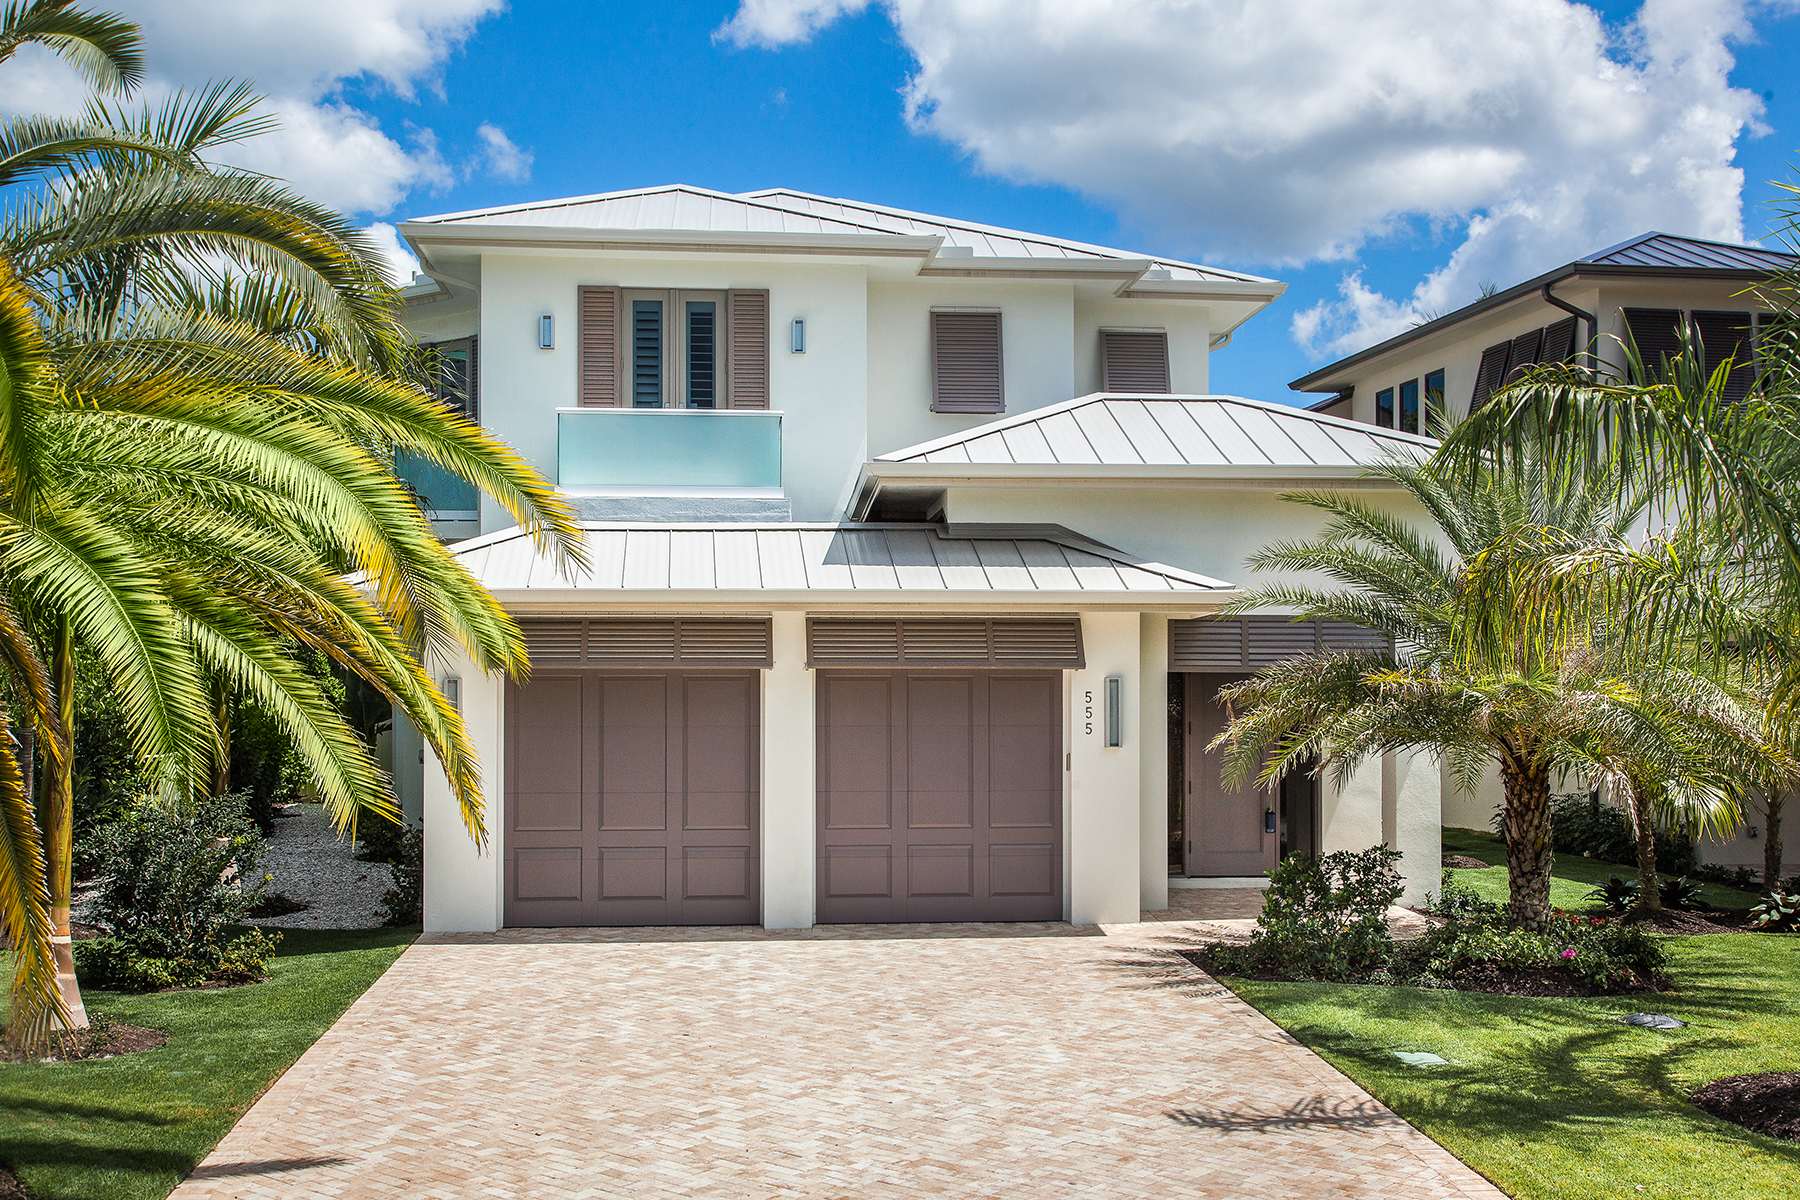 Villa per Vendita alle ore MOORINGS - FAIRWAY TERRACE 555 Fairway Terr Naples, Florida, 34103 Stati Uniti